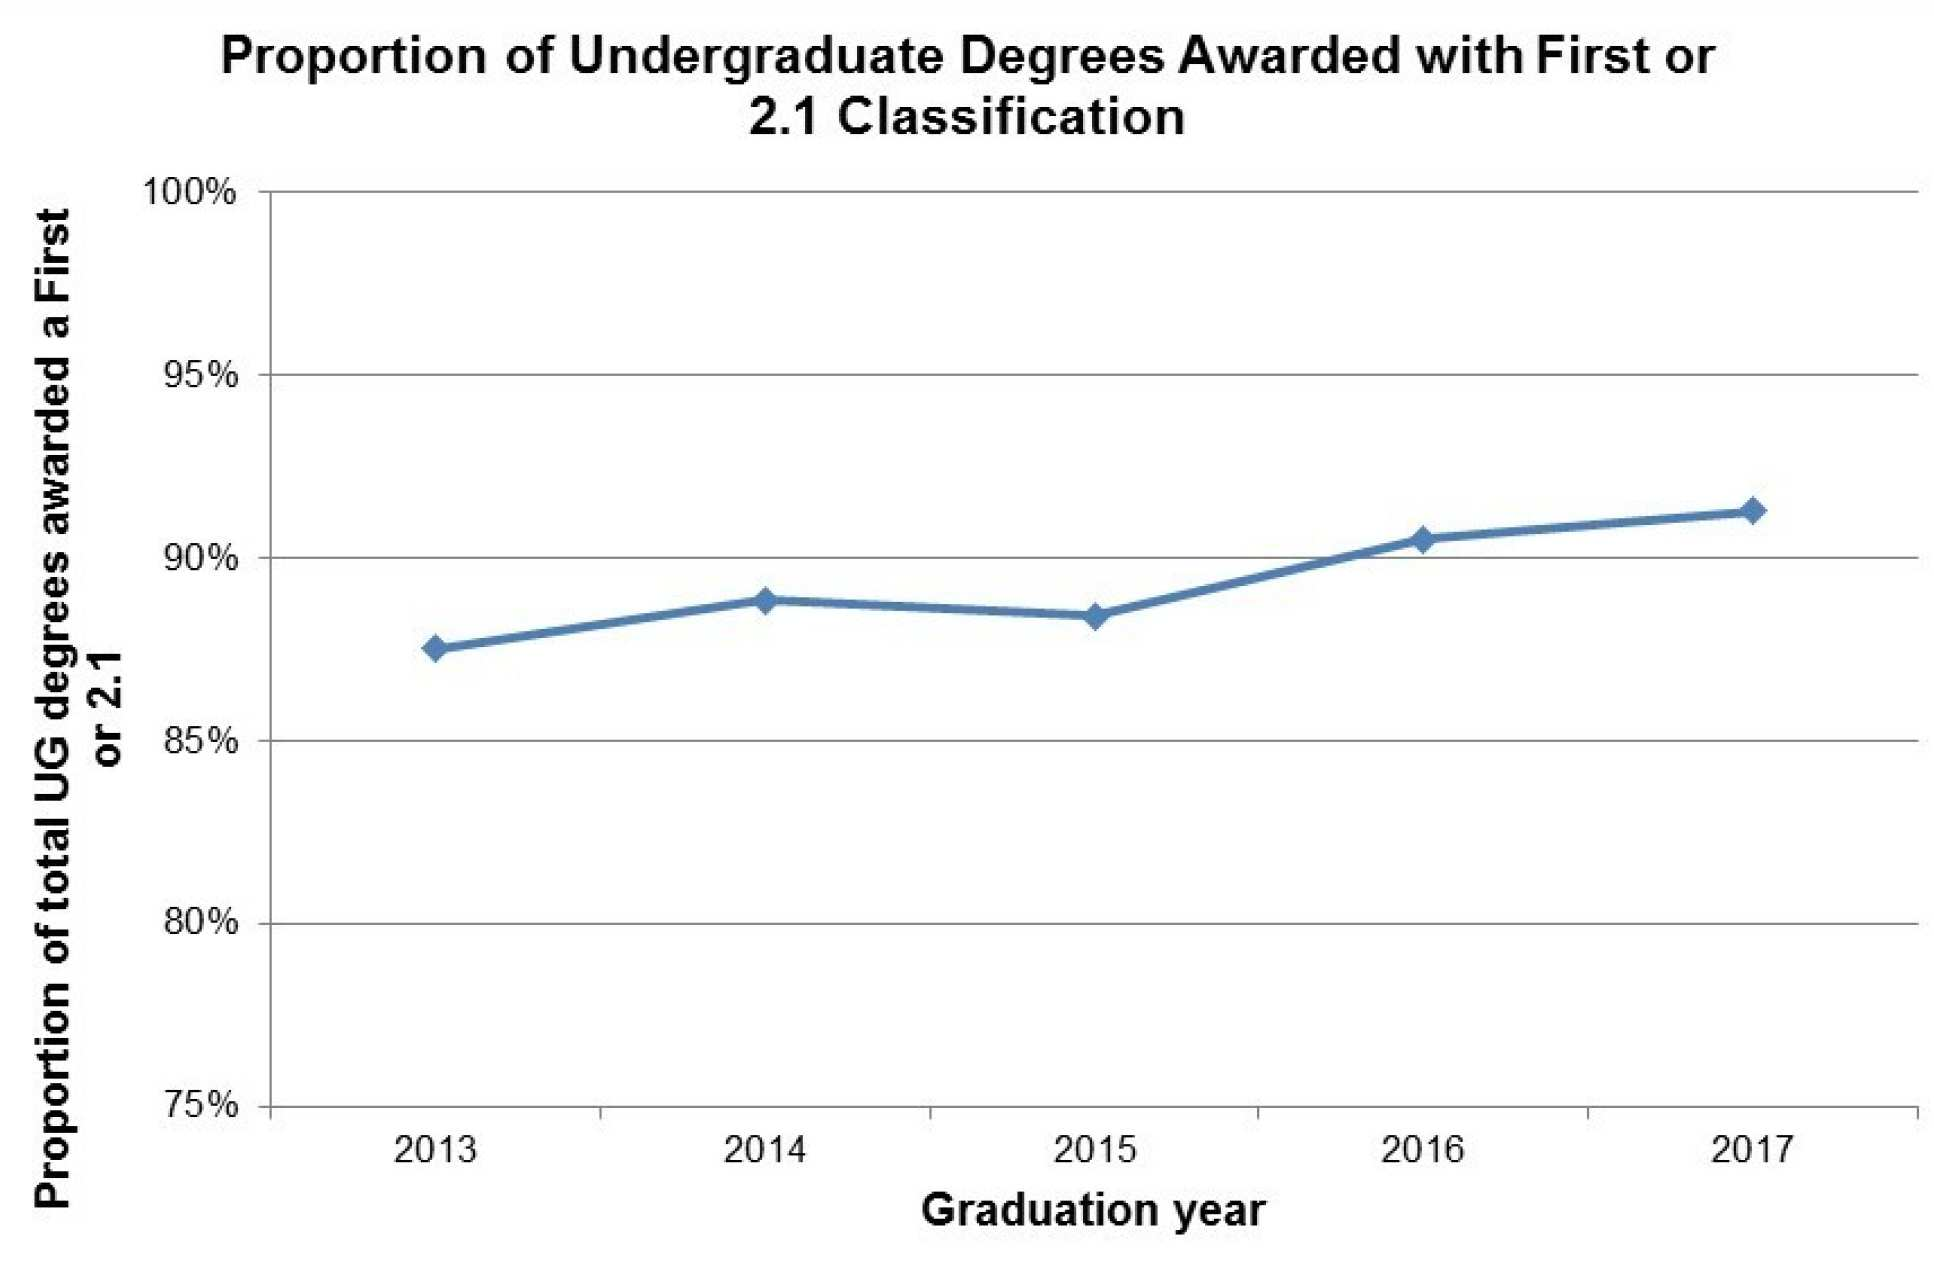 Proportion of Undergraduate Degrees Awarded with First or 2.1 Classification